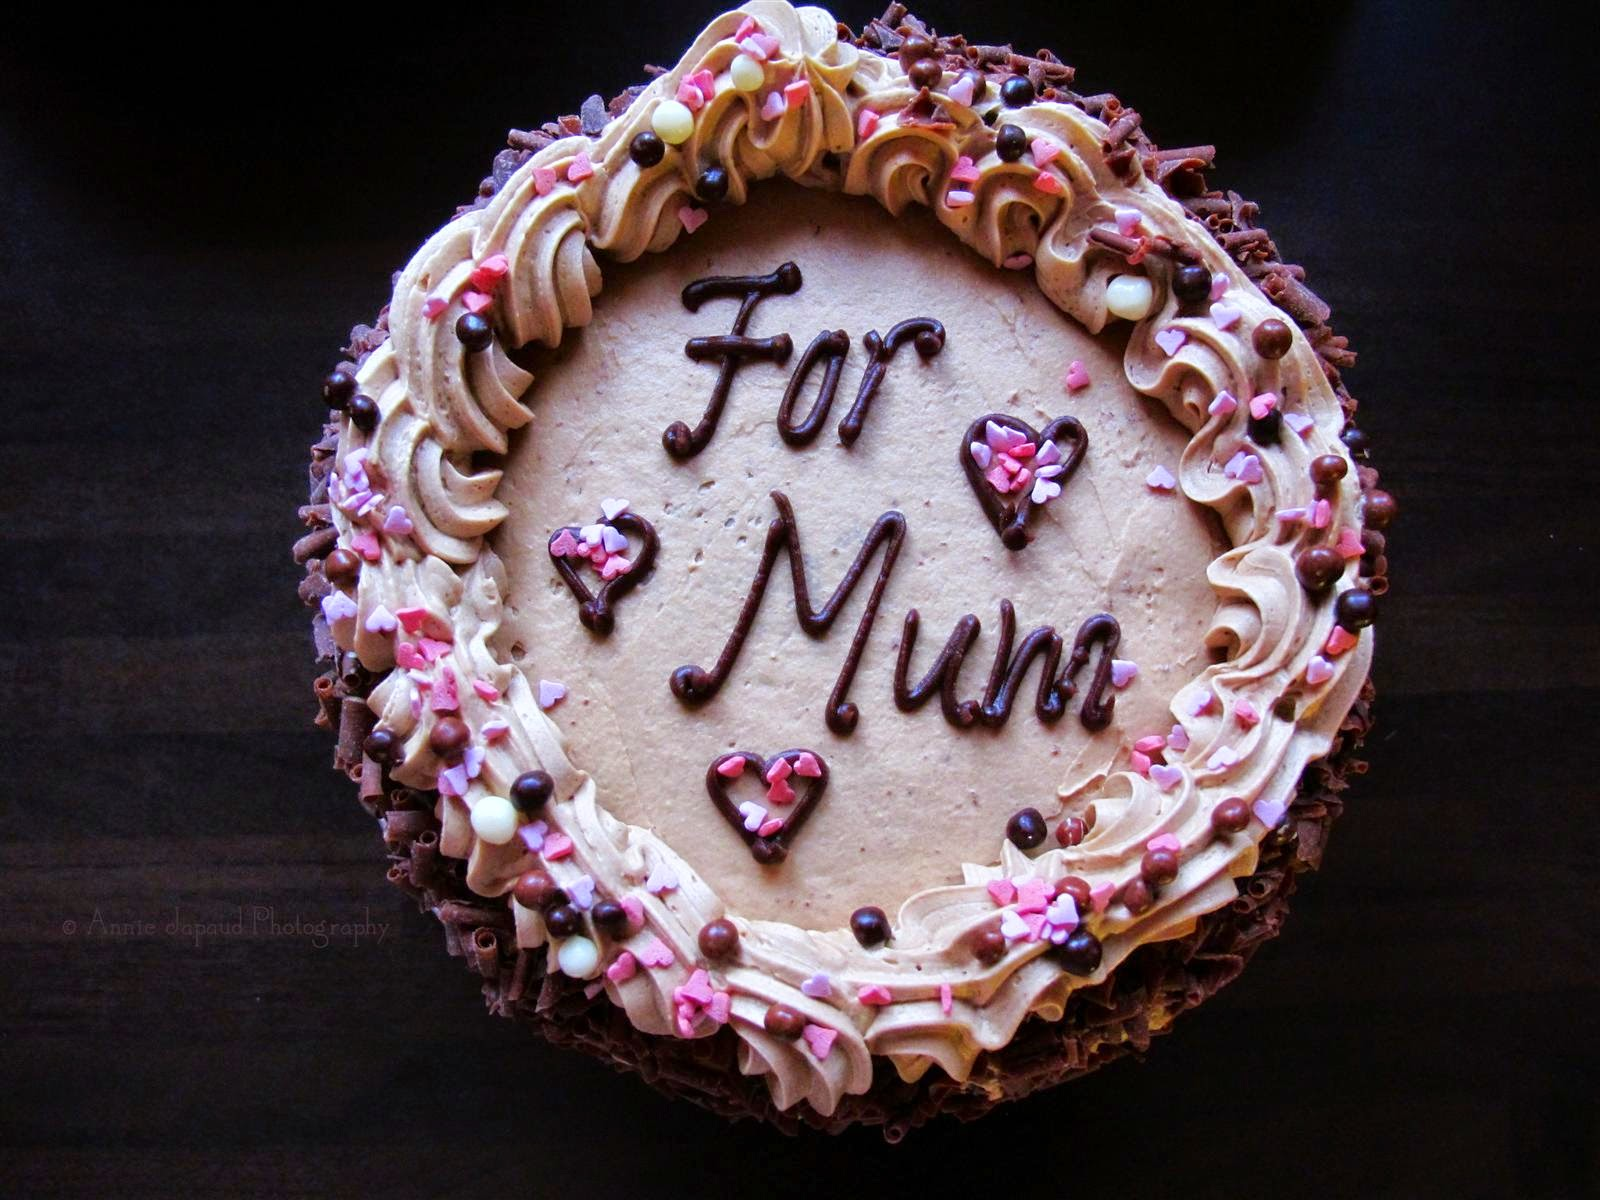 coffee cake with pink decoration and mum written on it